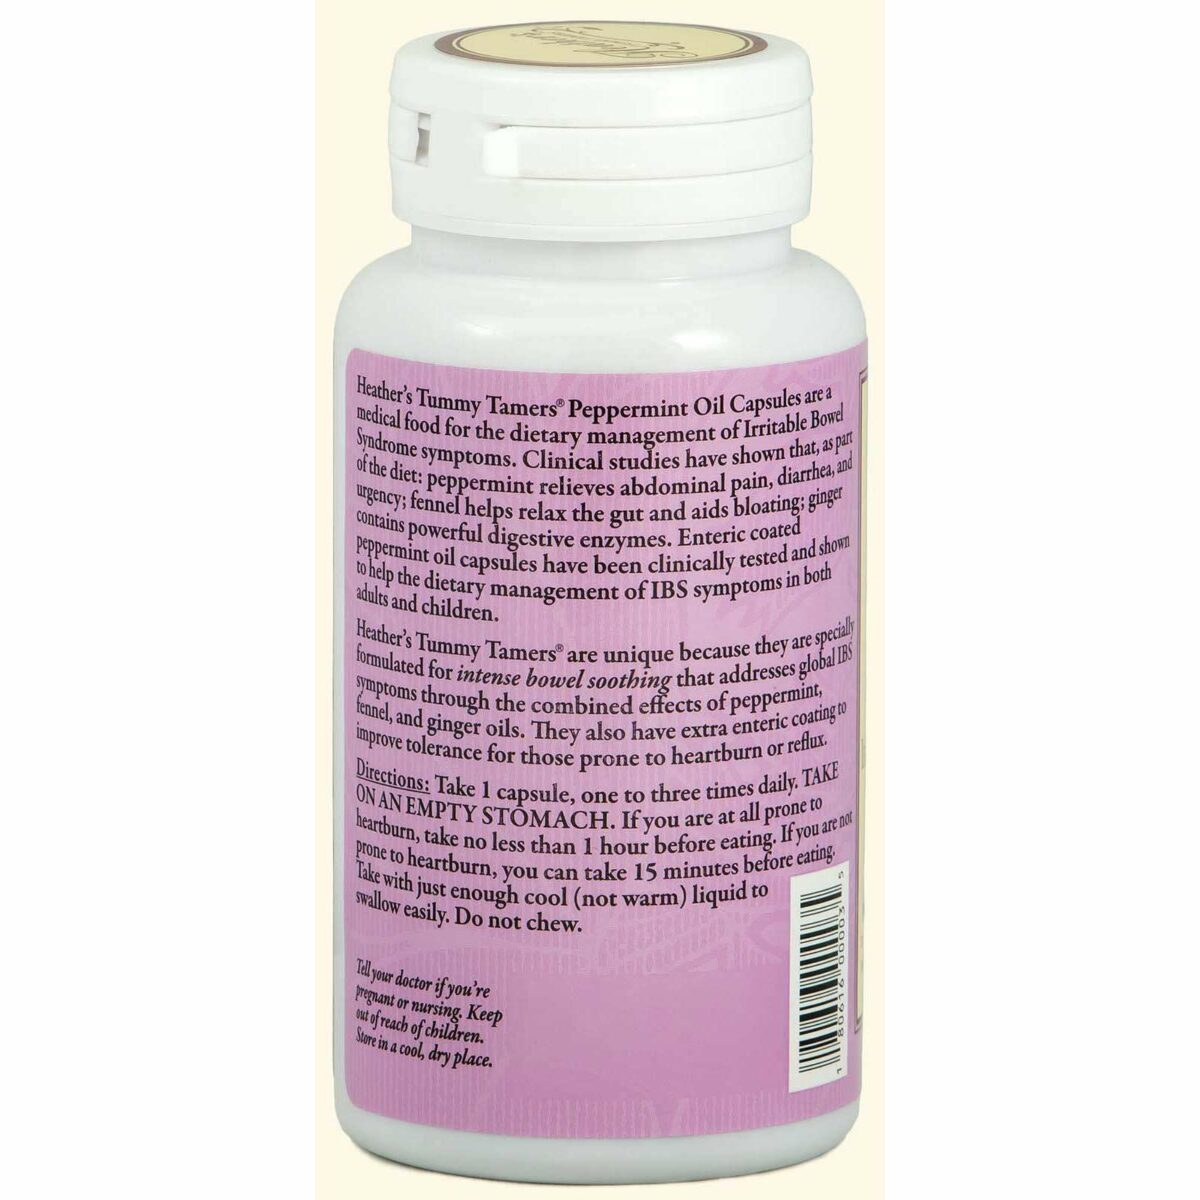 Heather's Tummy Care - Peppermint Oil, Irritable Bowel Syndrome - 90 Enteric Coated Softgels - AM VITAMINS